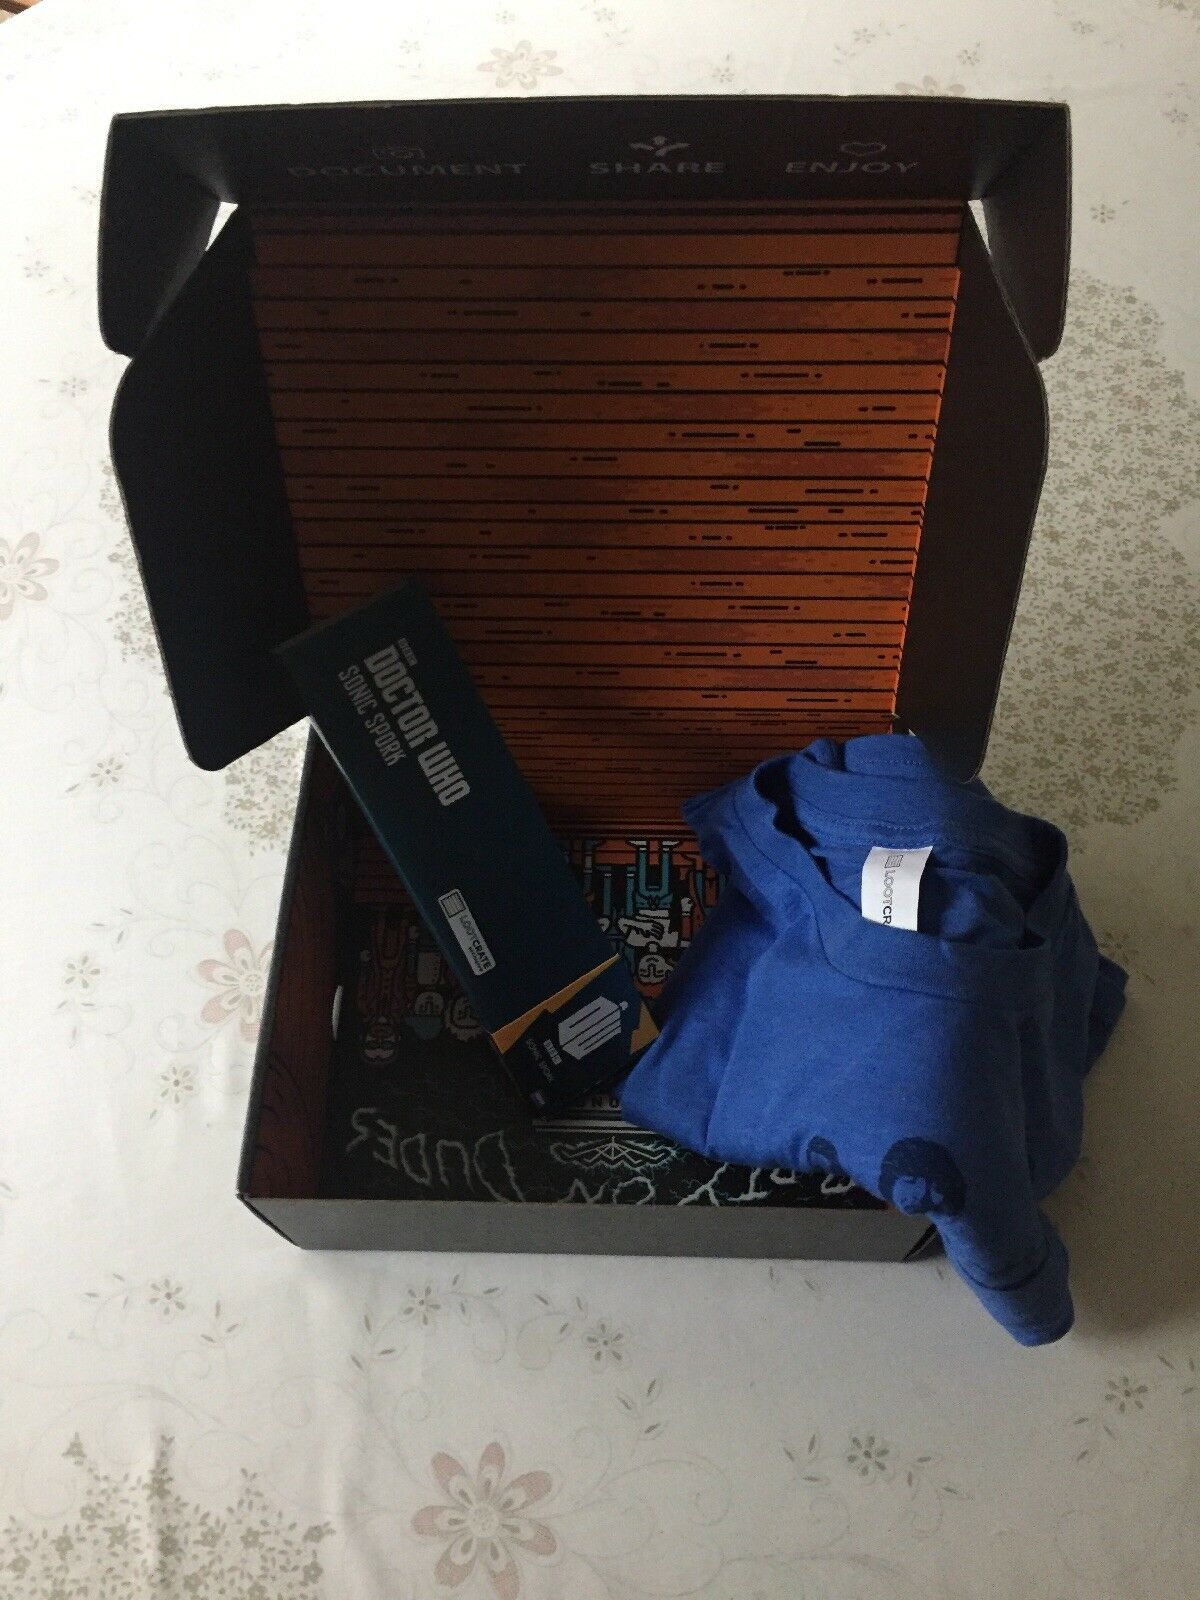 Lootcrate Time Crate - October 2015 - Incomplete - Bill & Ted T-Shirt - Dr. Who